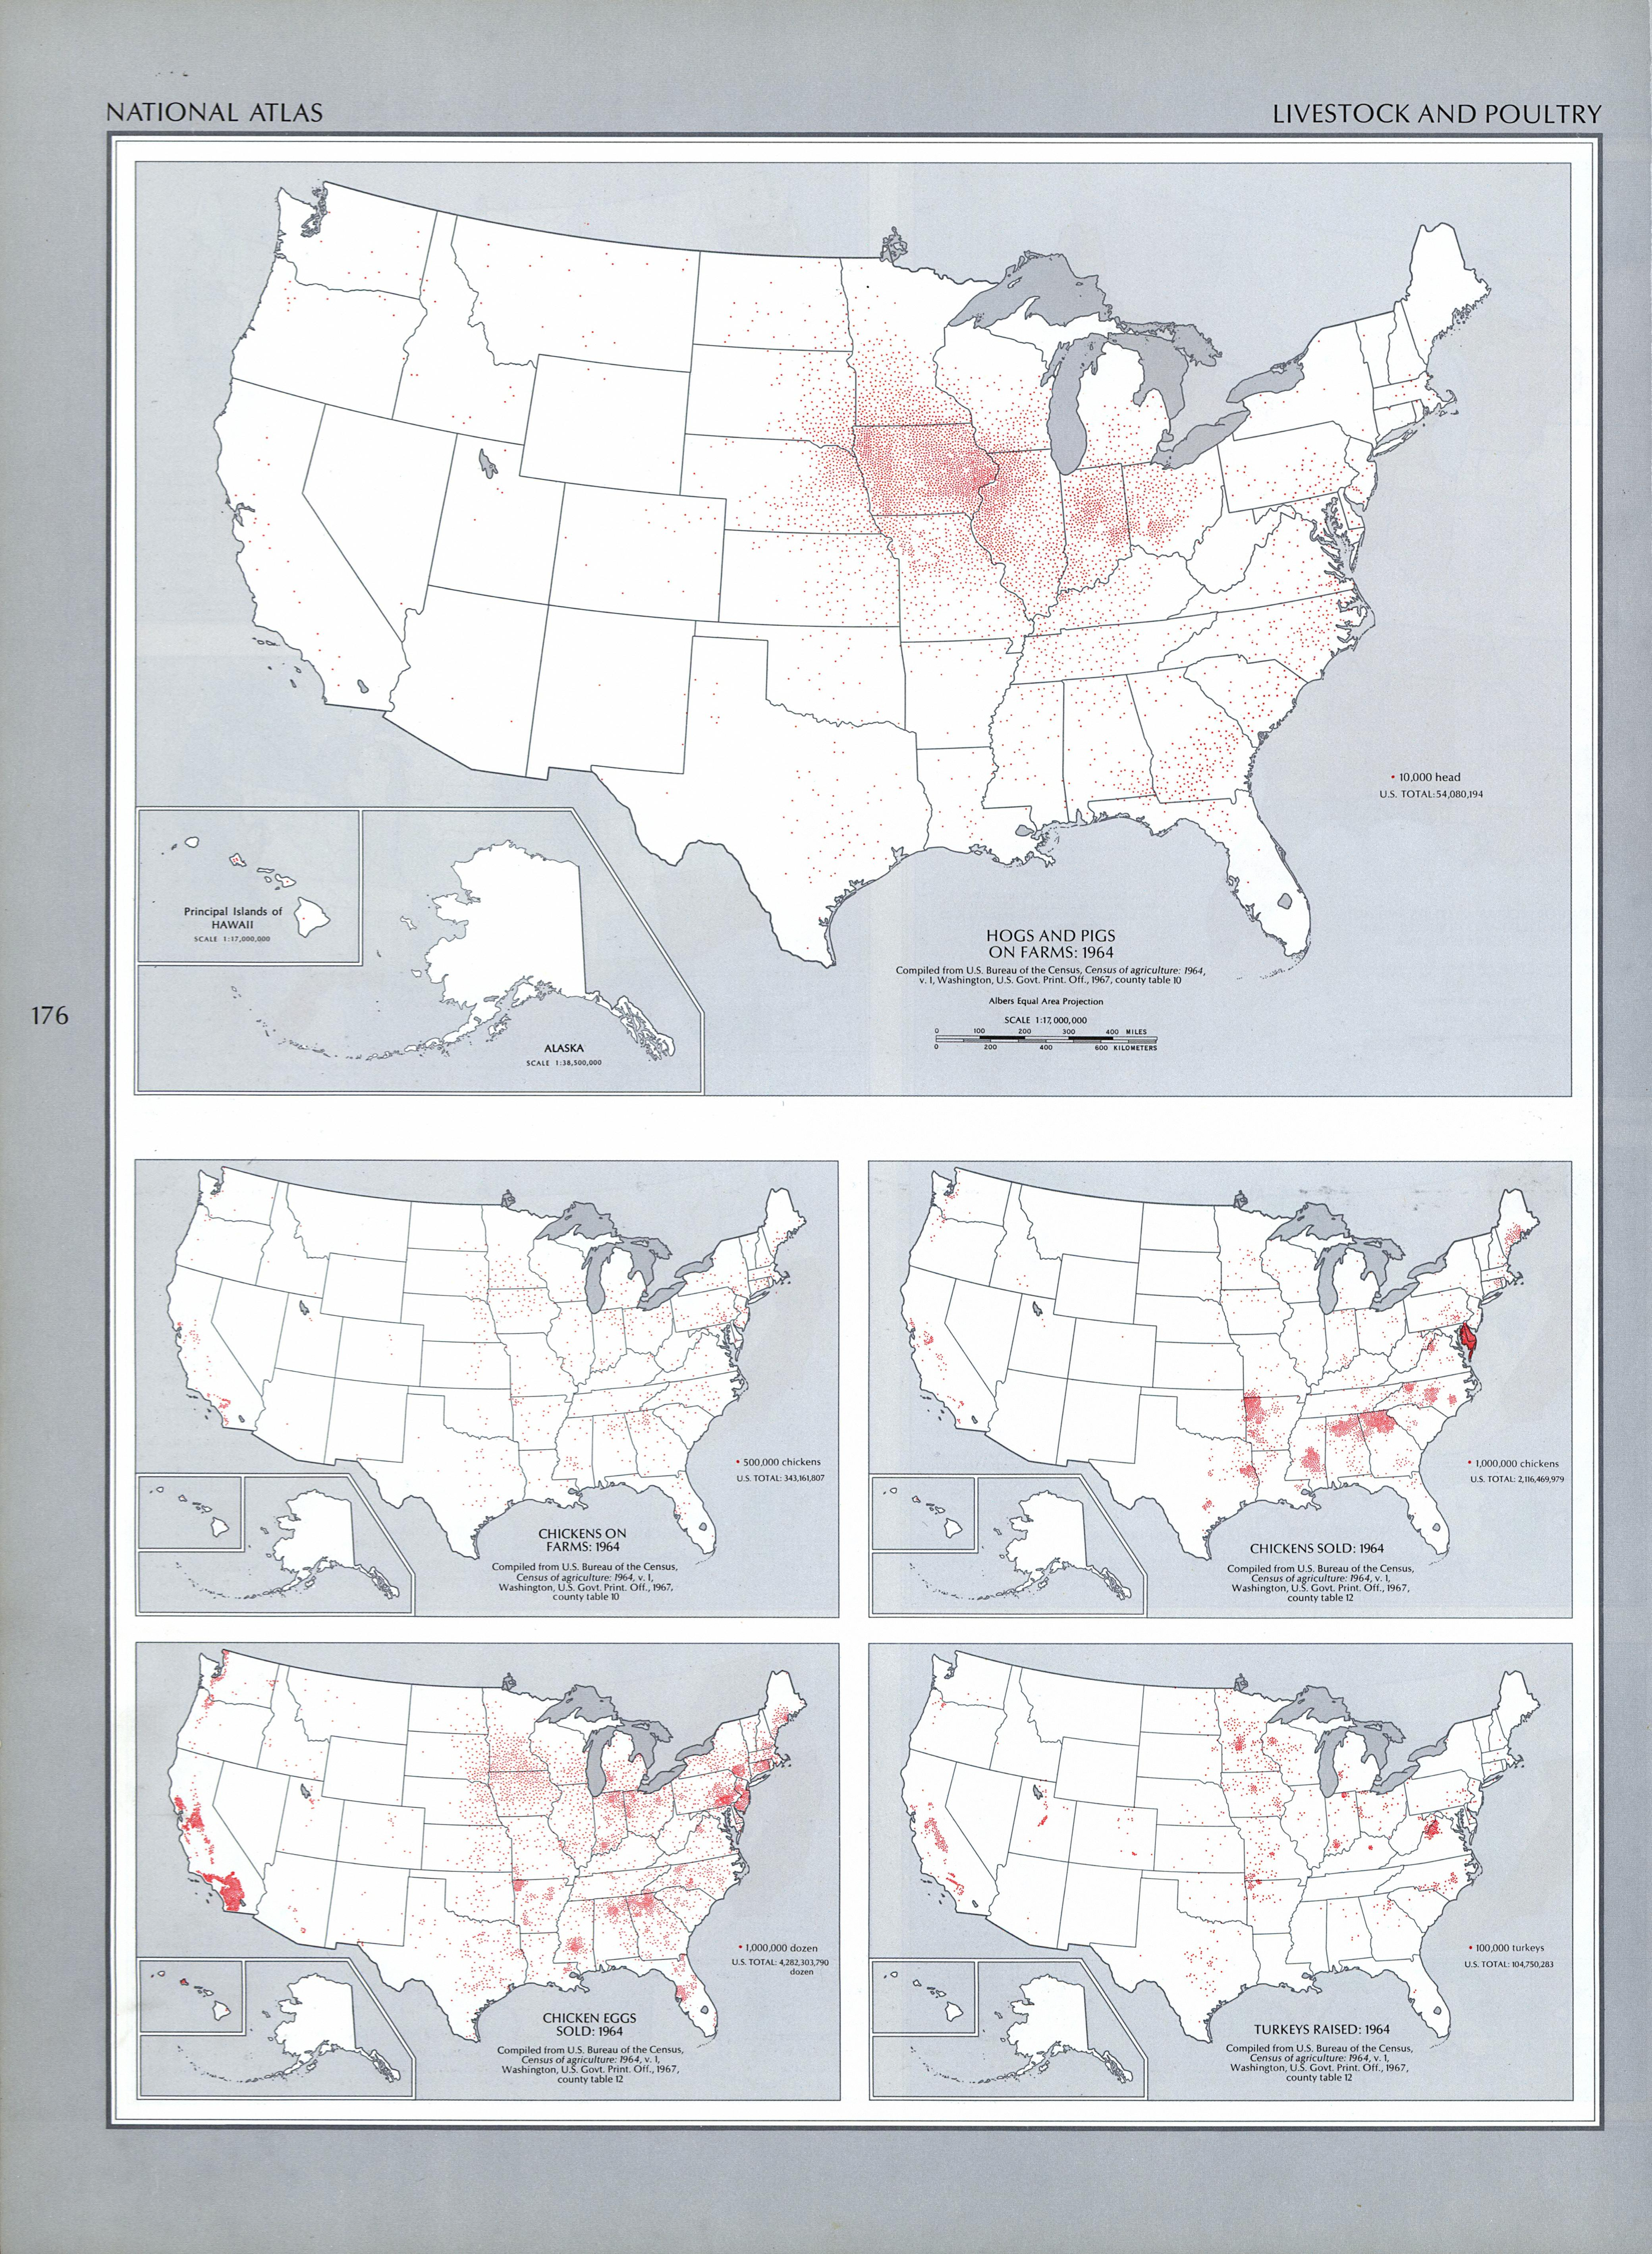 United States Livestock and Poultry Map